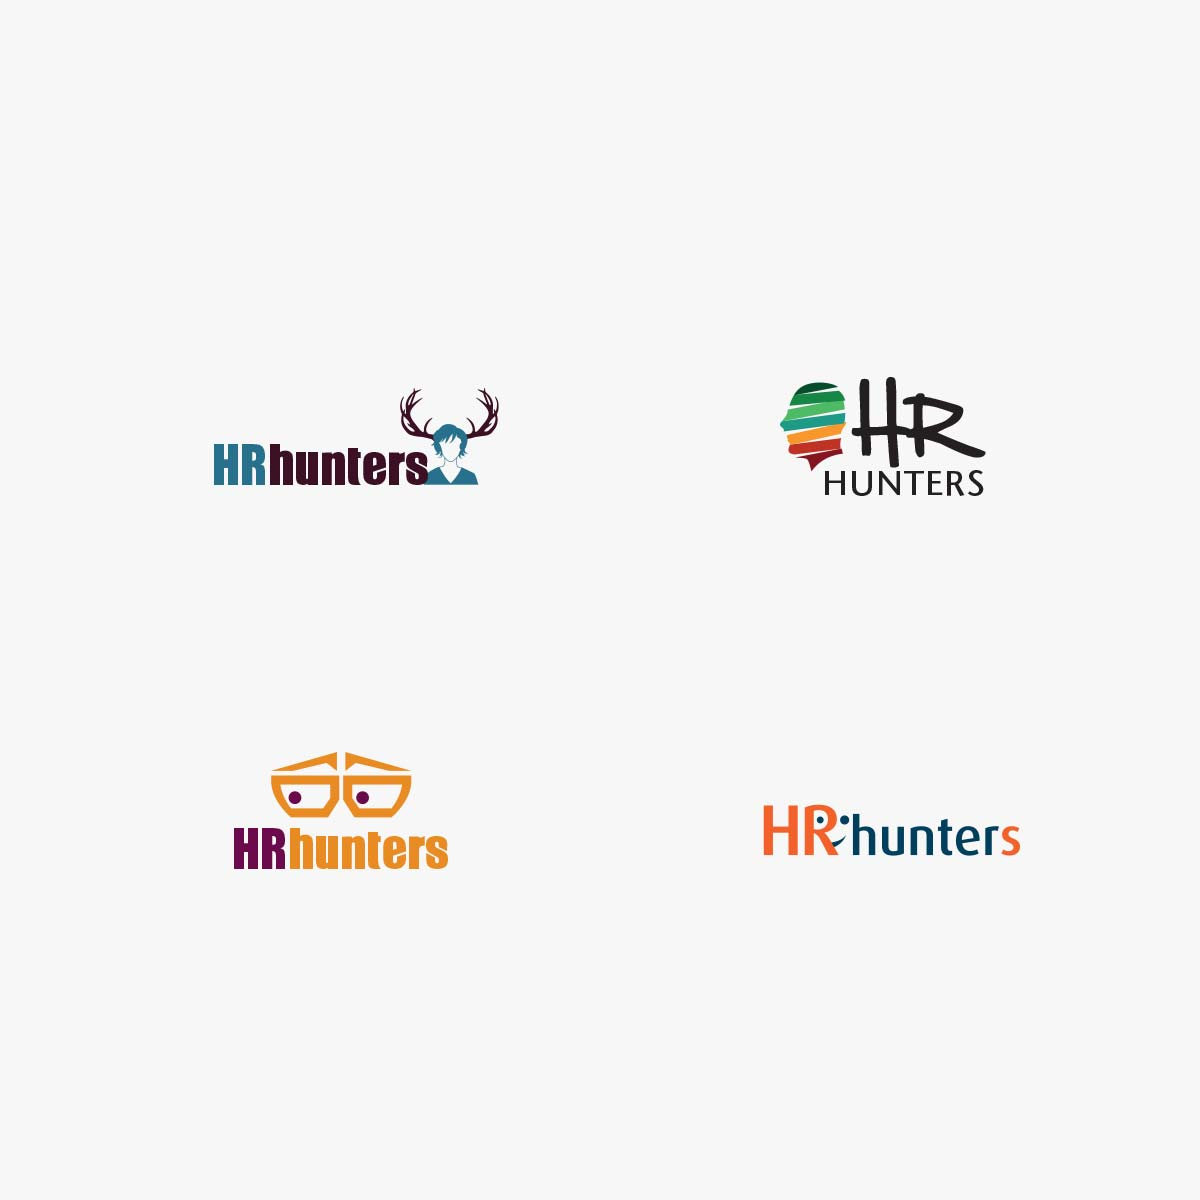 HR Hunters logo